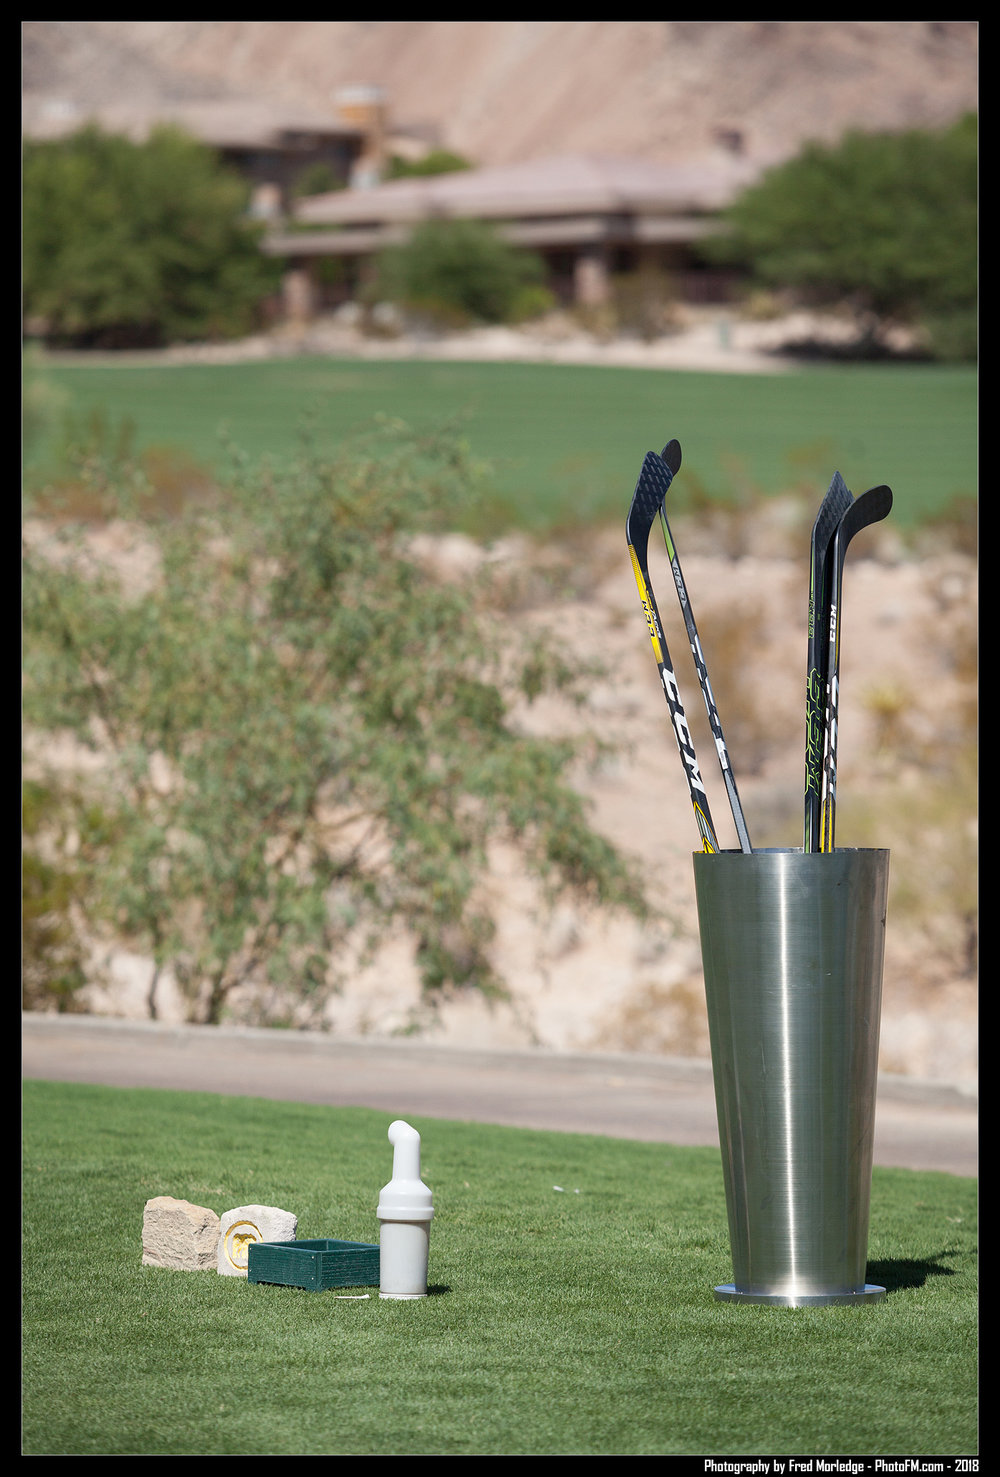 Vegas-Golden-Knights-Inaugural-Charity-Golf-Classic-Roaming-by-Fred-Morledge-PhotoFM-2018-070.jpg